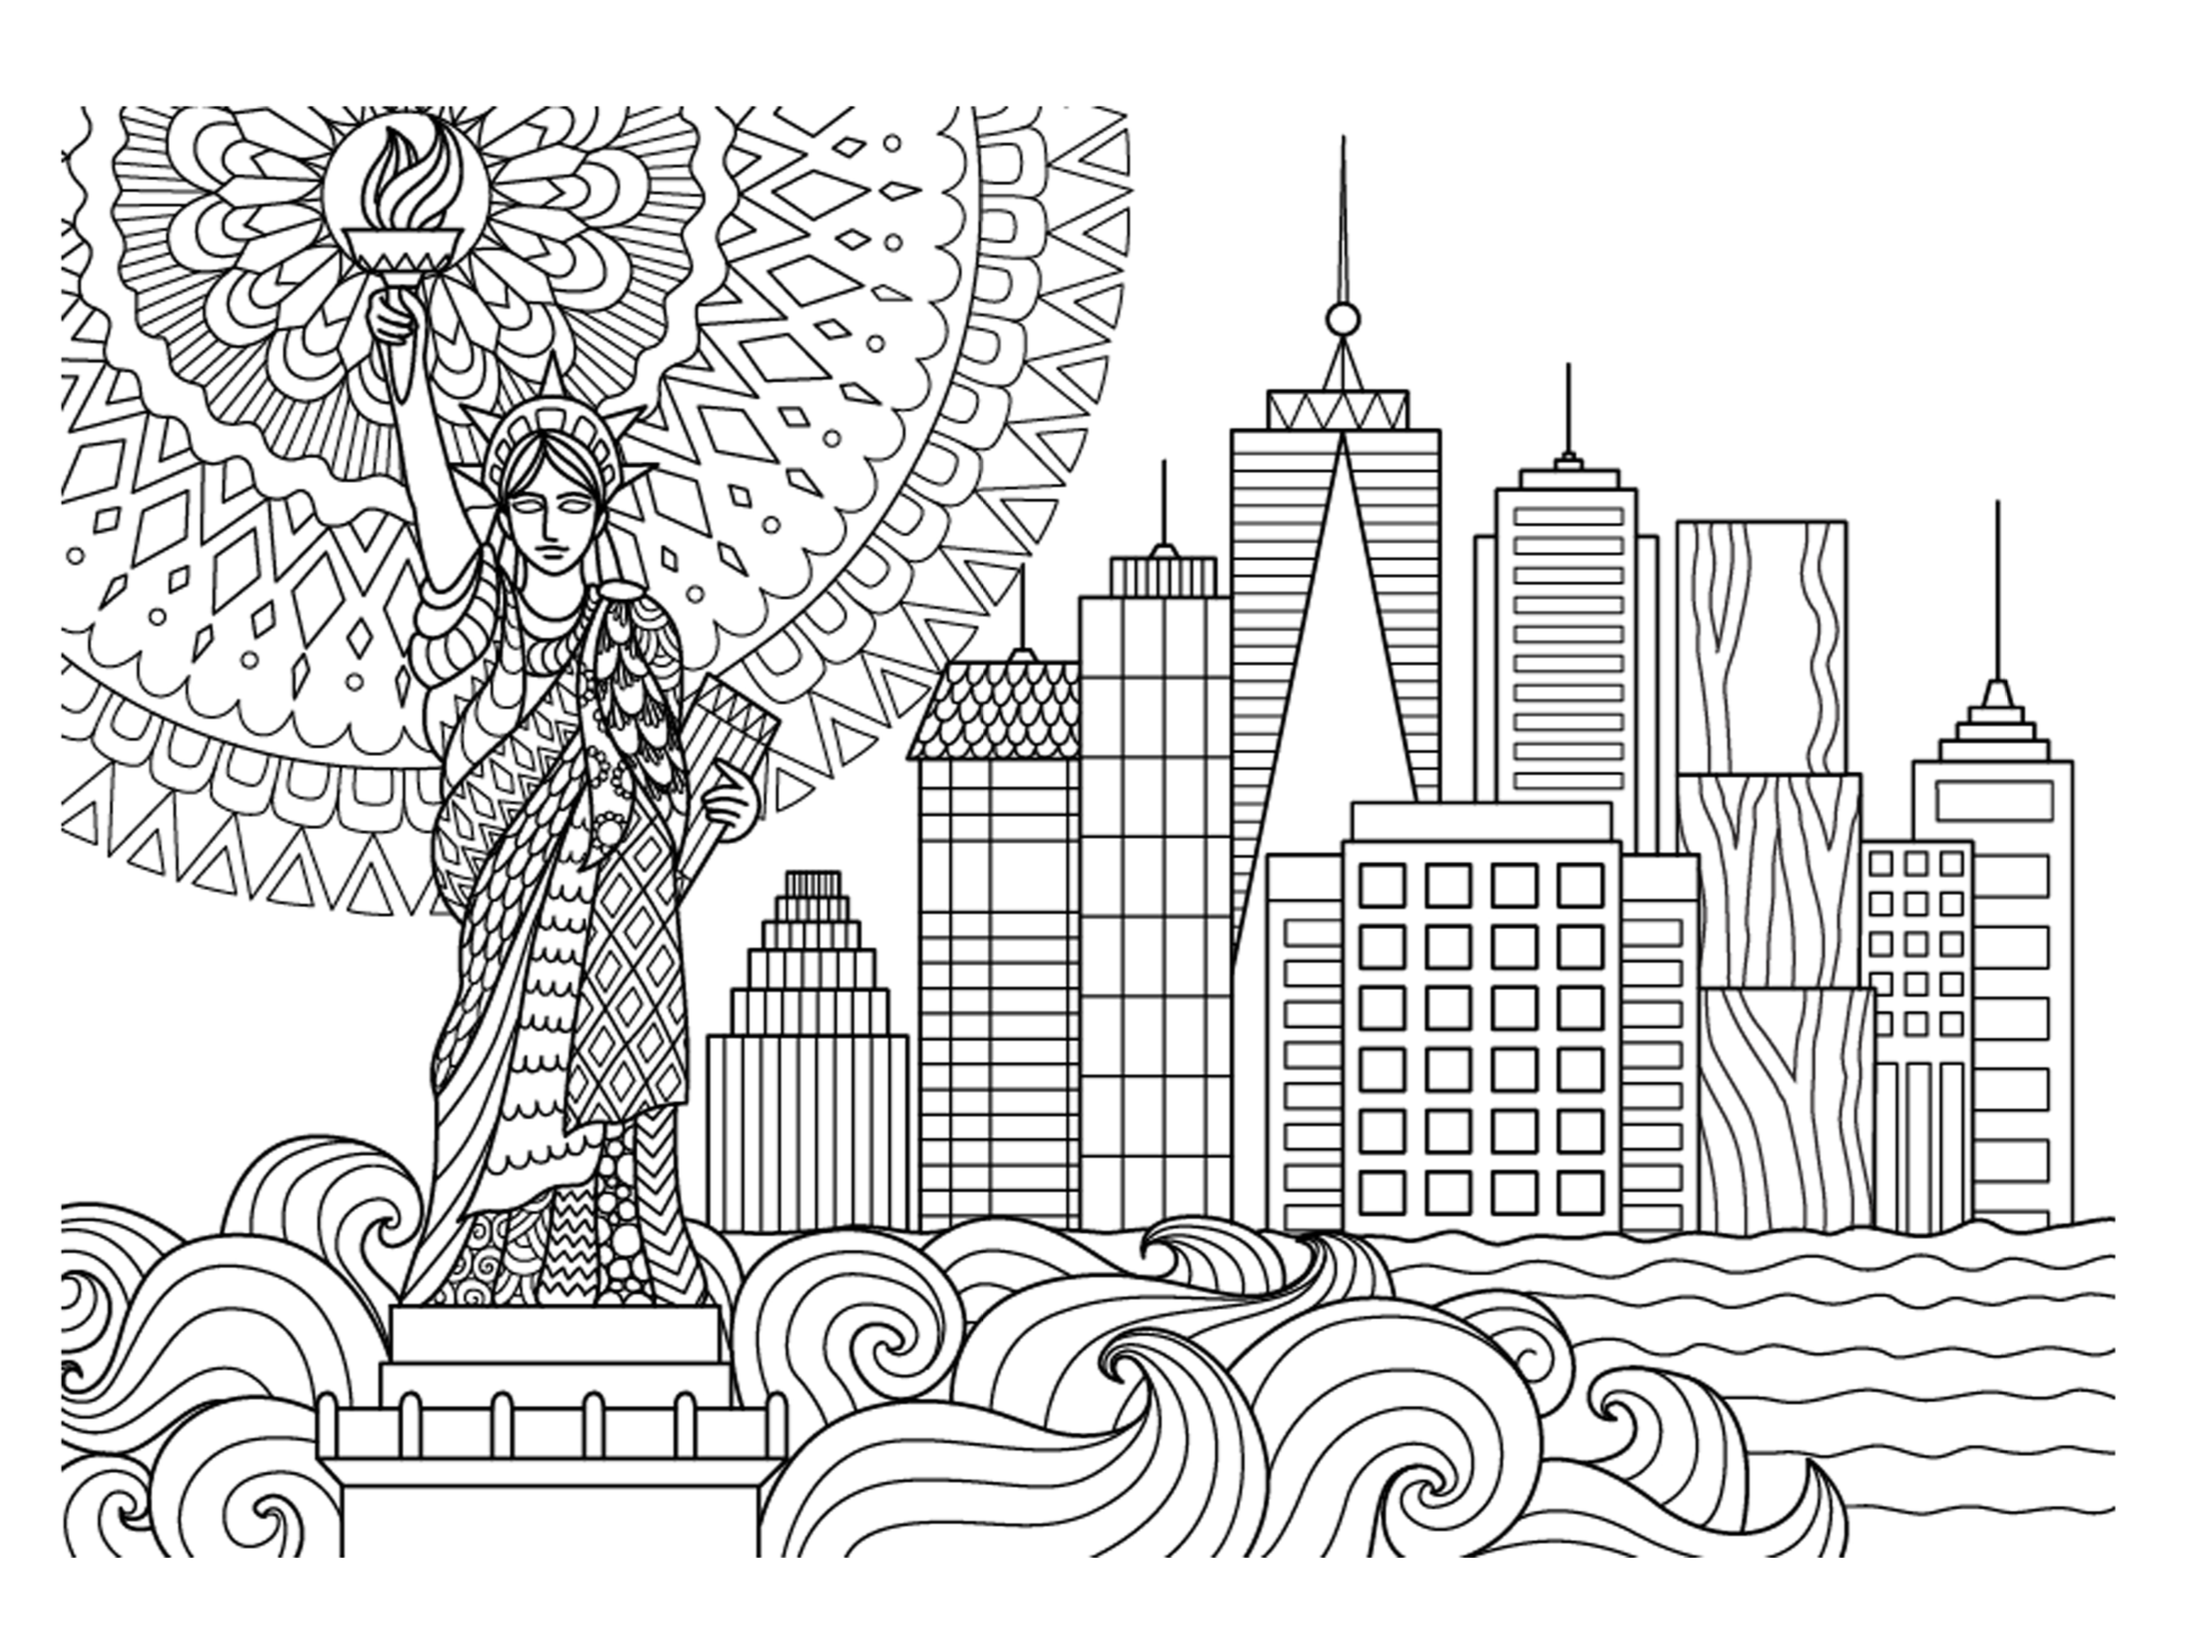 new york city coloring pages - photo#7